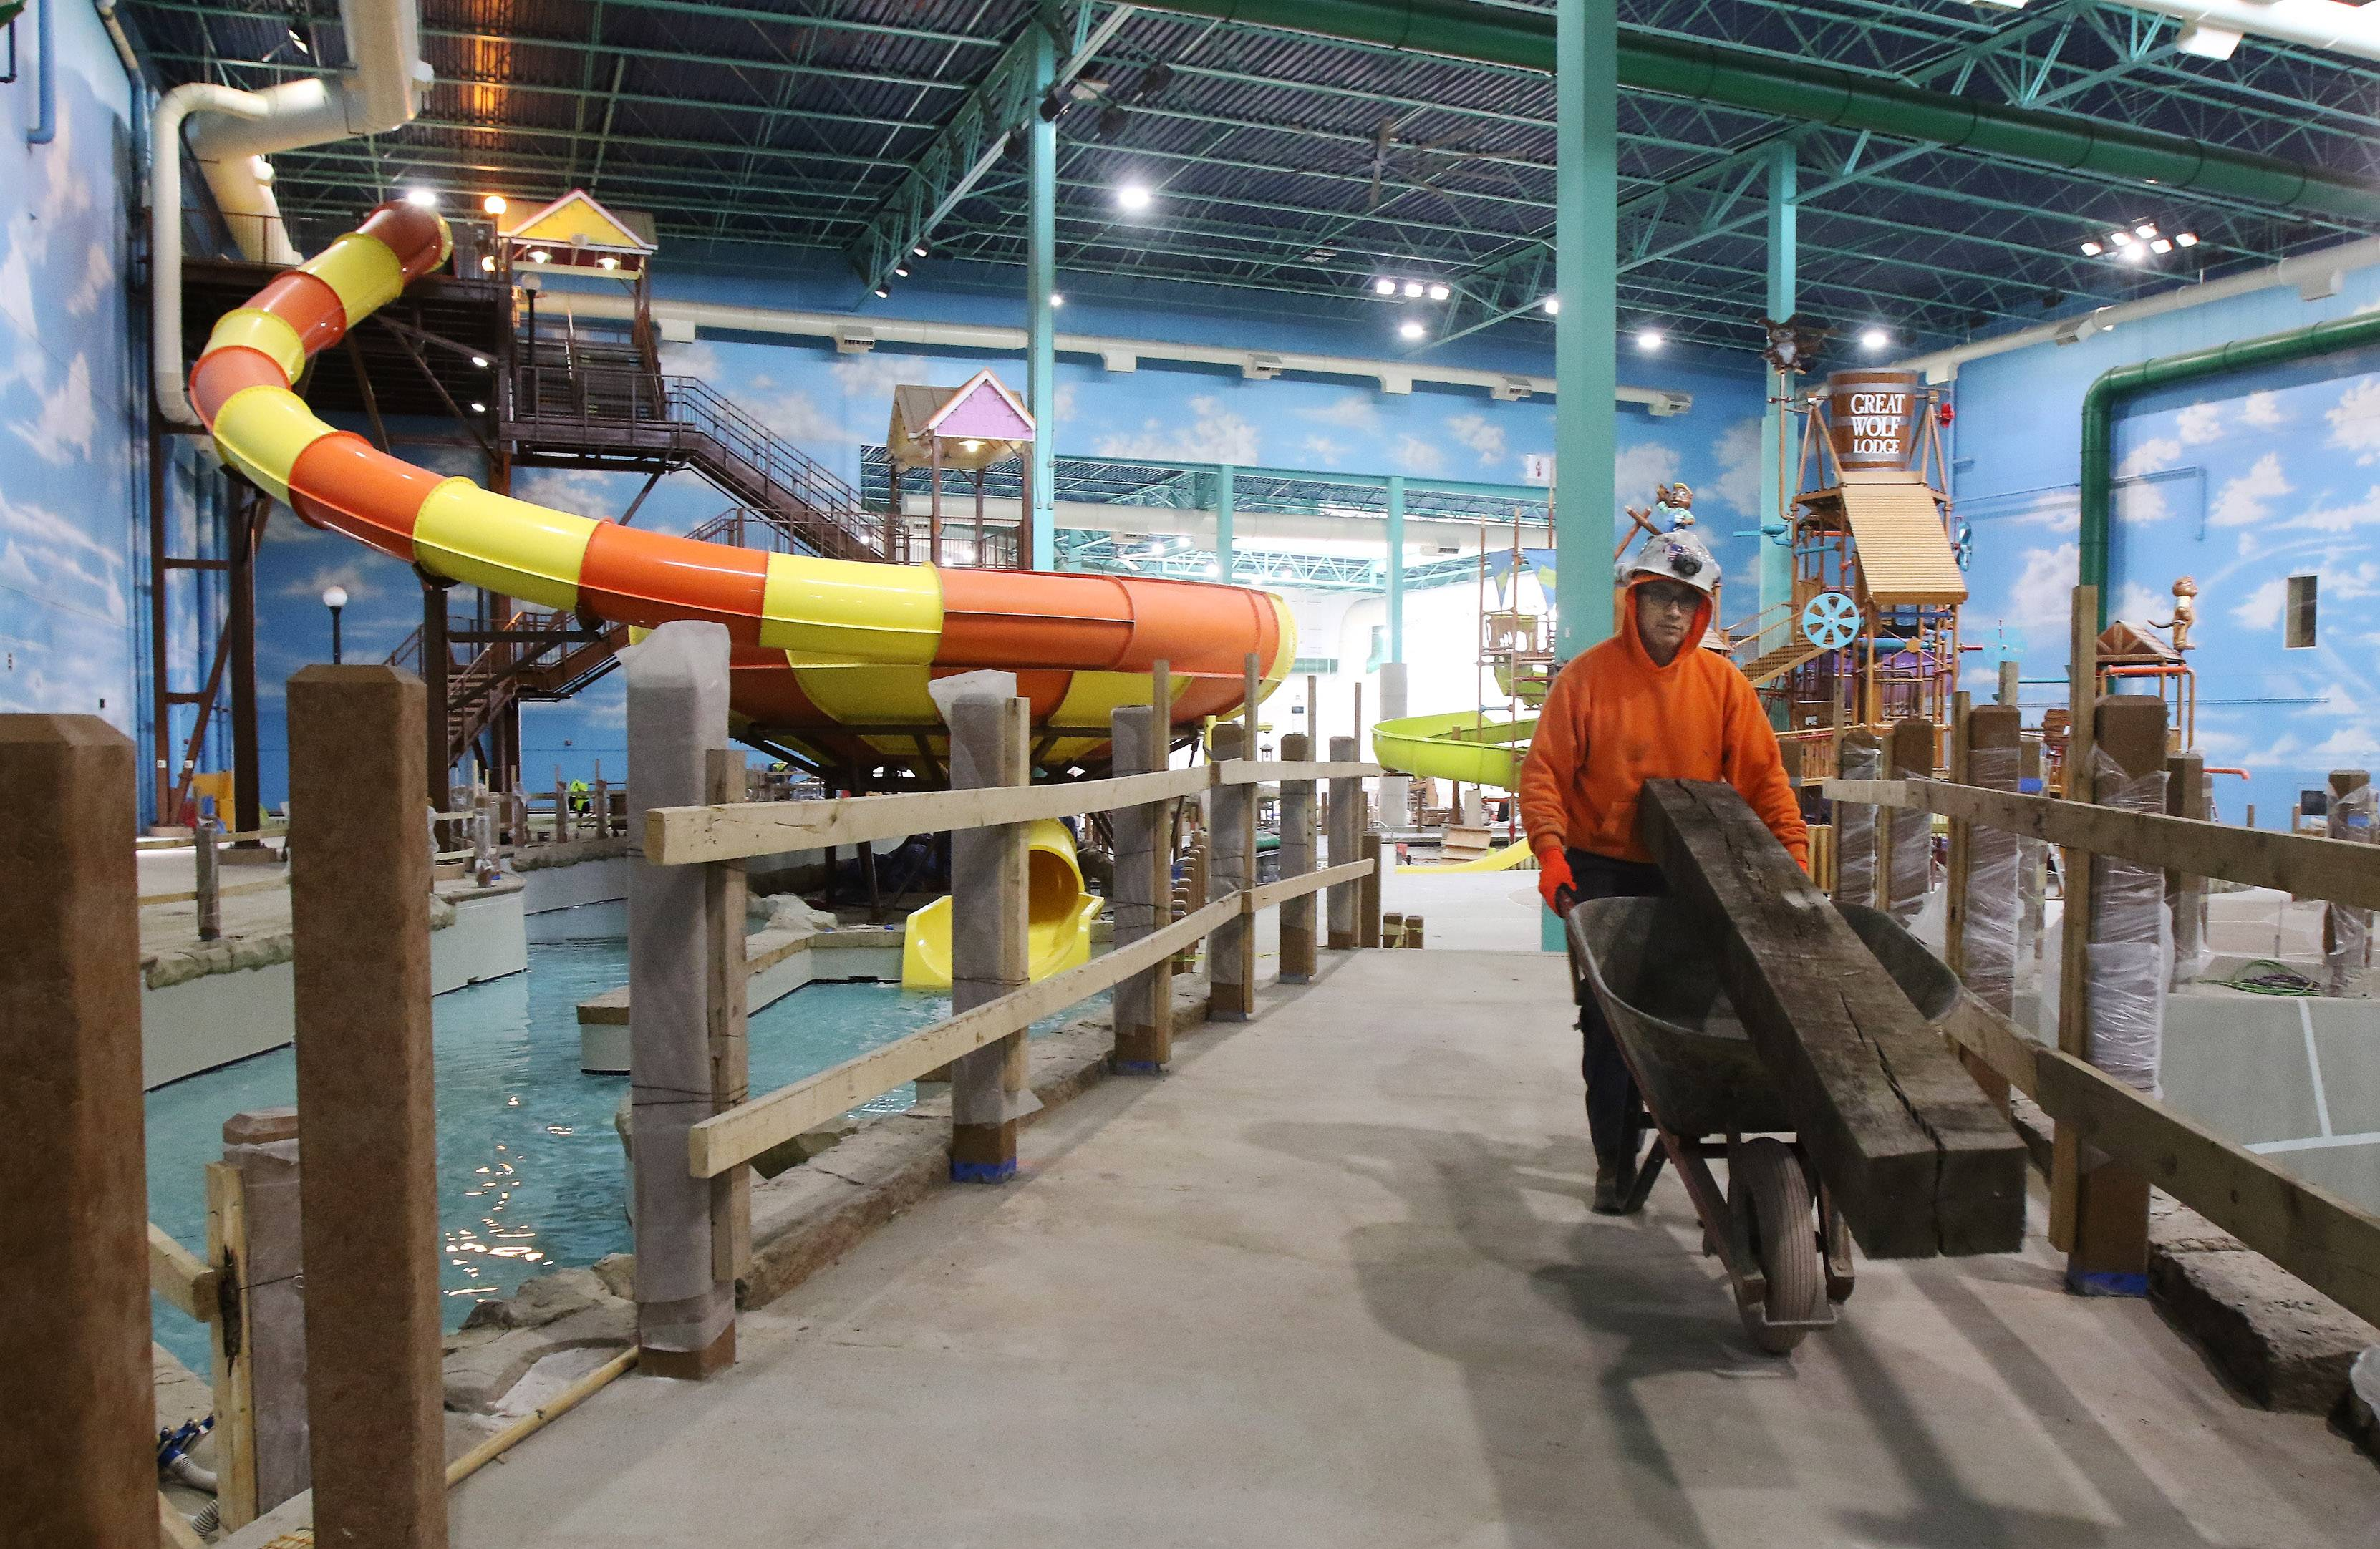 Bigger Water Park Ropes Course Among New Features At